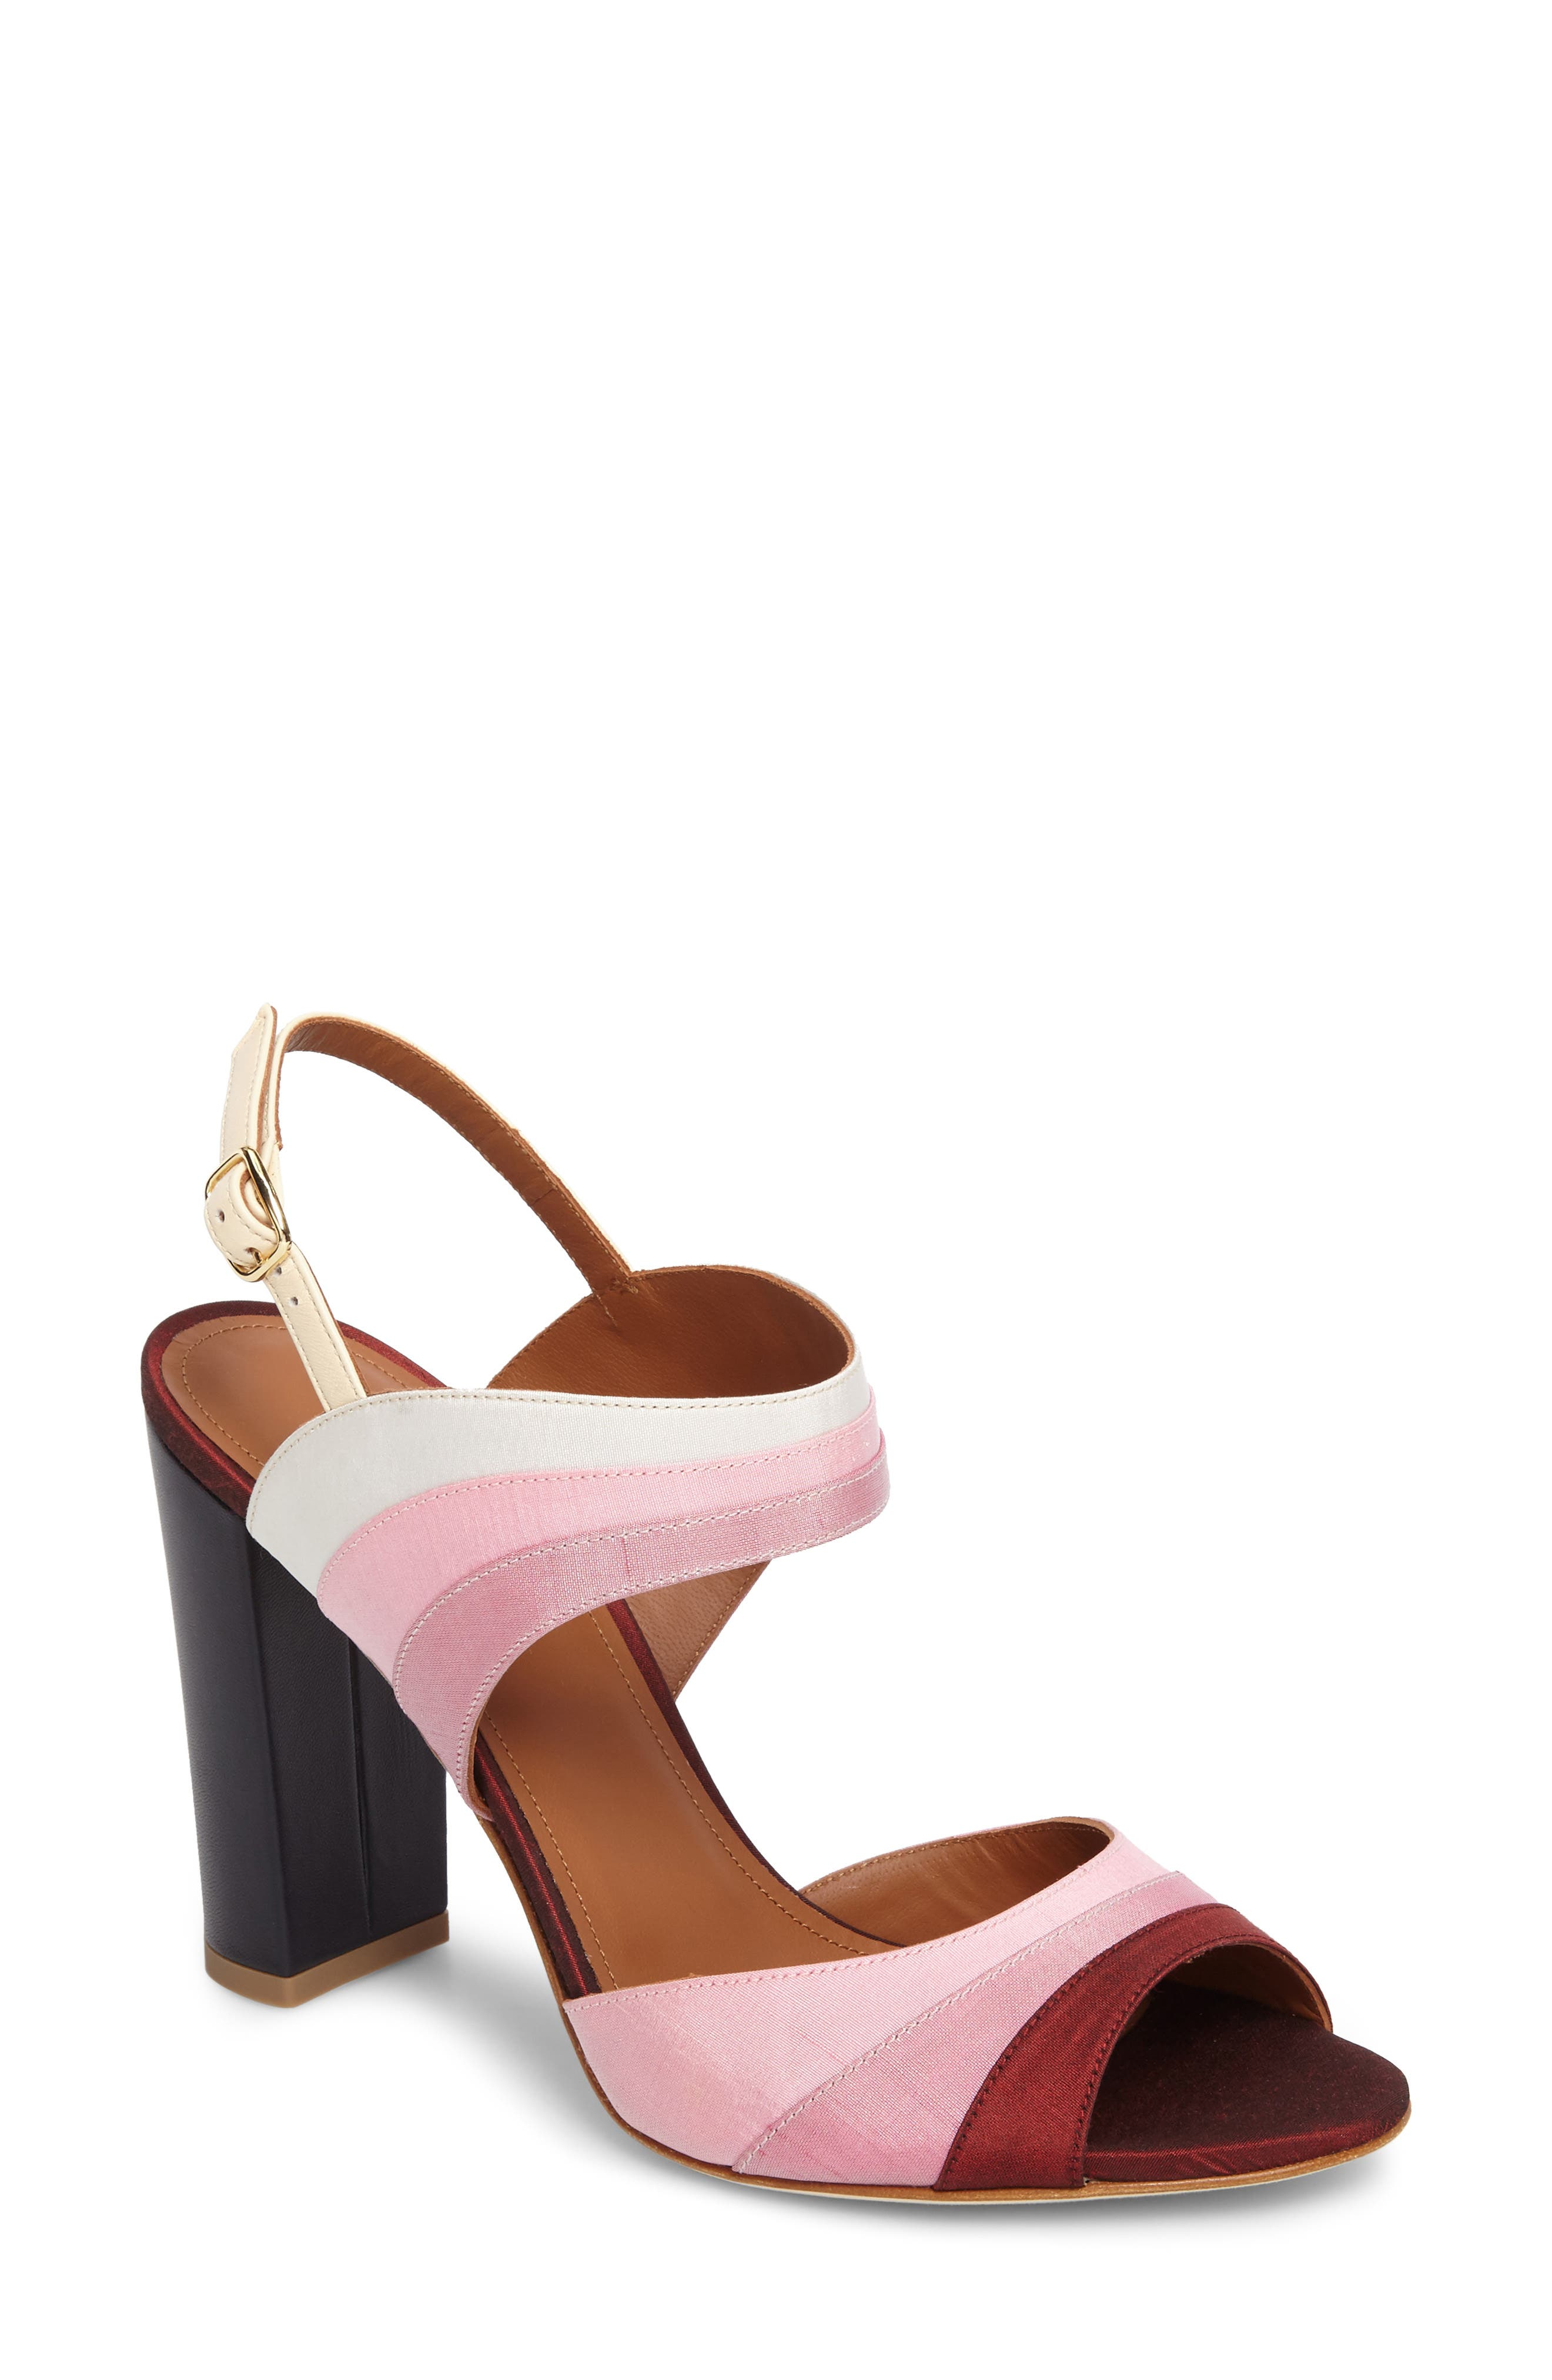 Alternate Image 1 Selected - Malone Souliers Anita Ombré Slingback Sandal (Women)